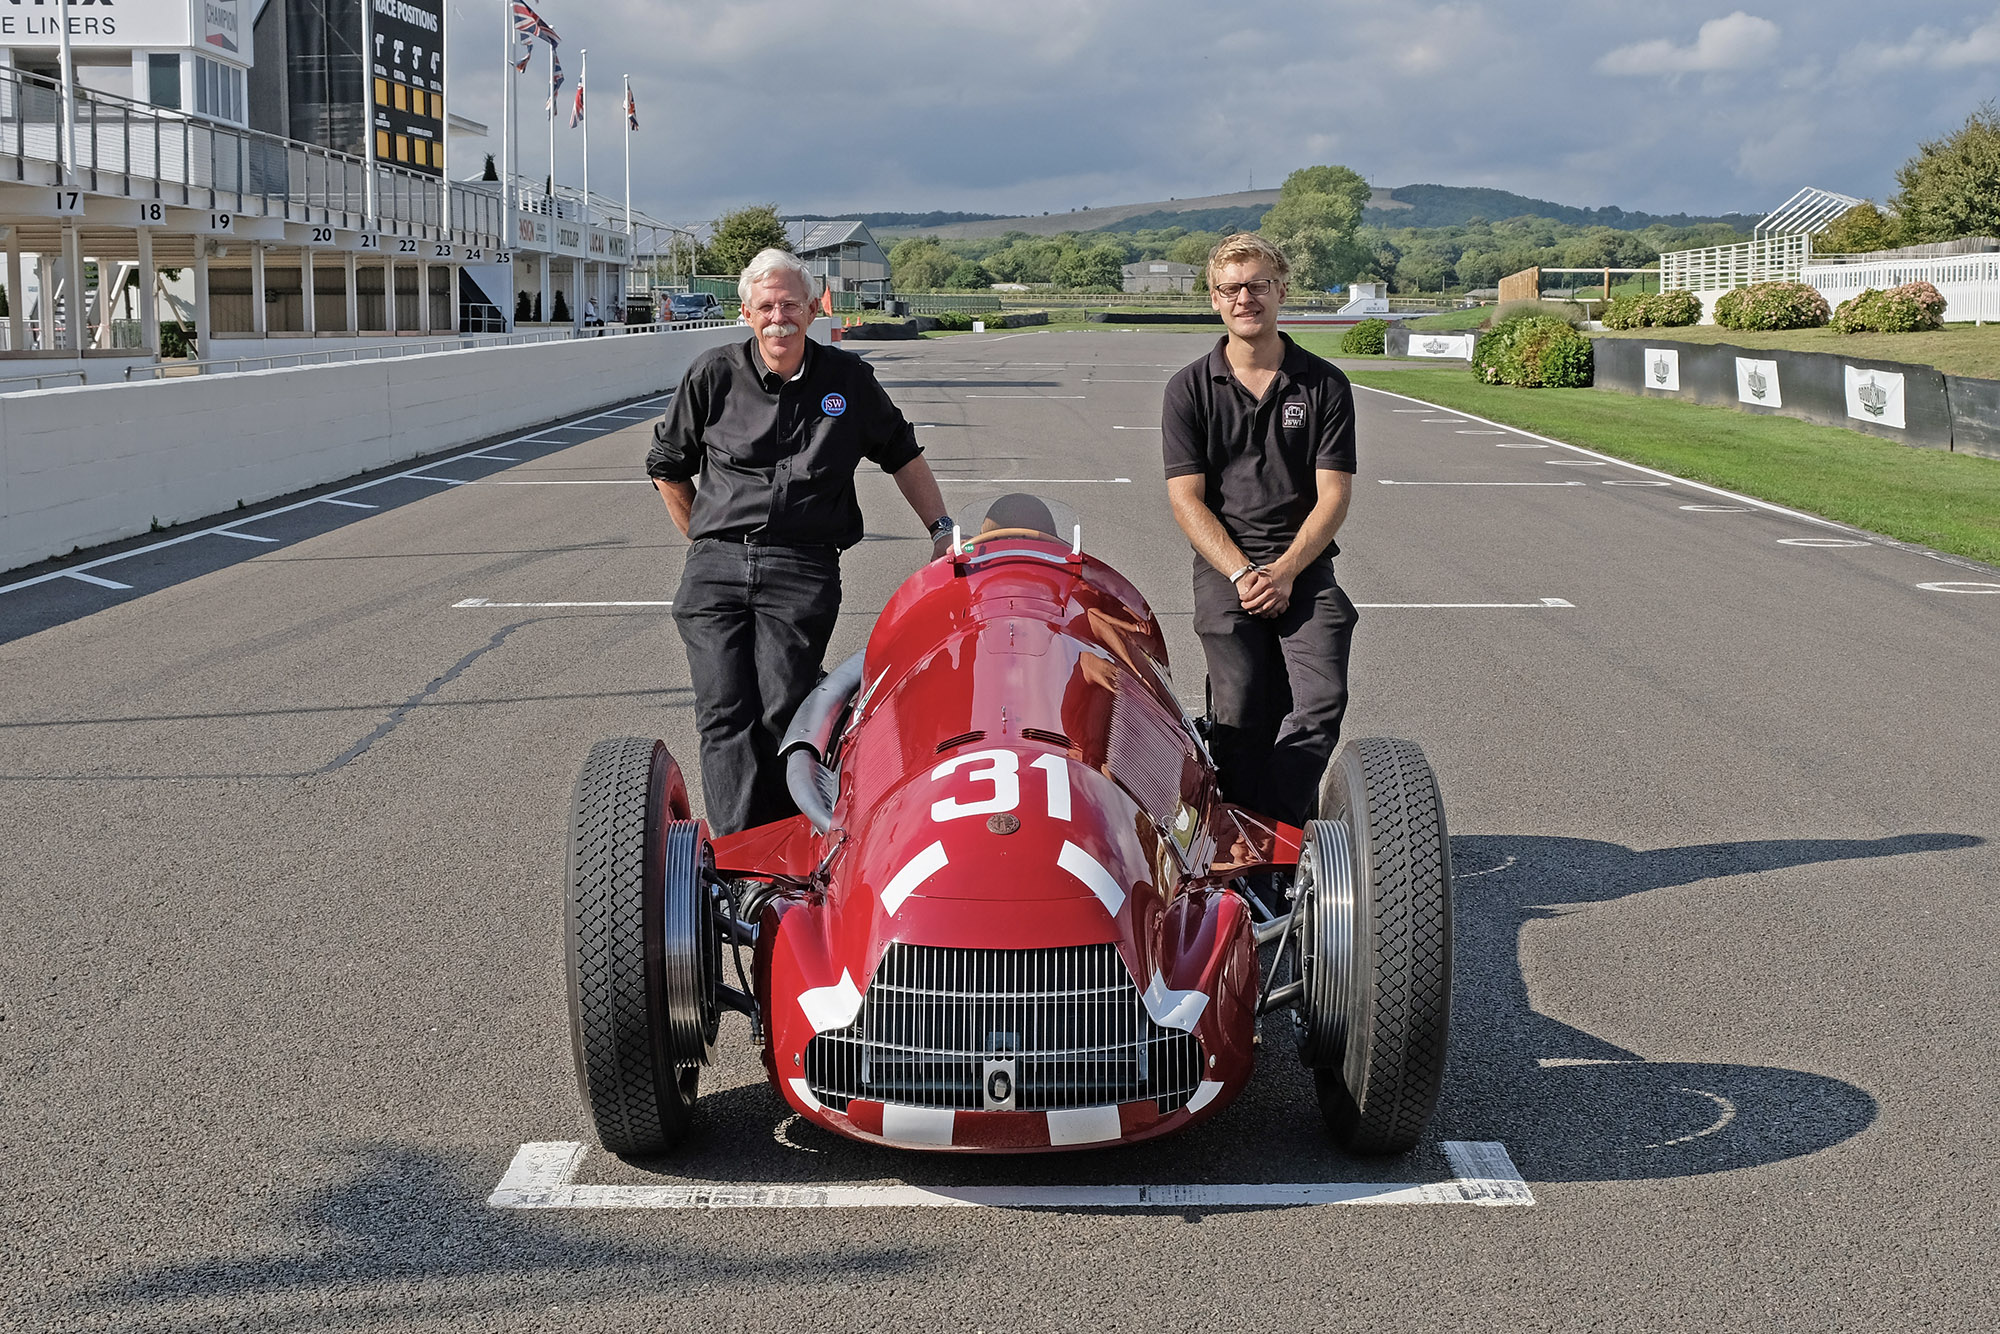 Jim Stokes and James Holloway with their restored Alfa 158